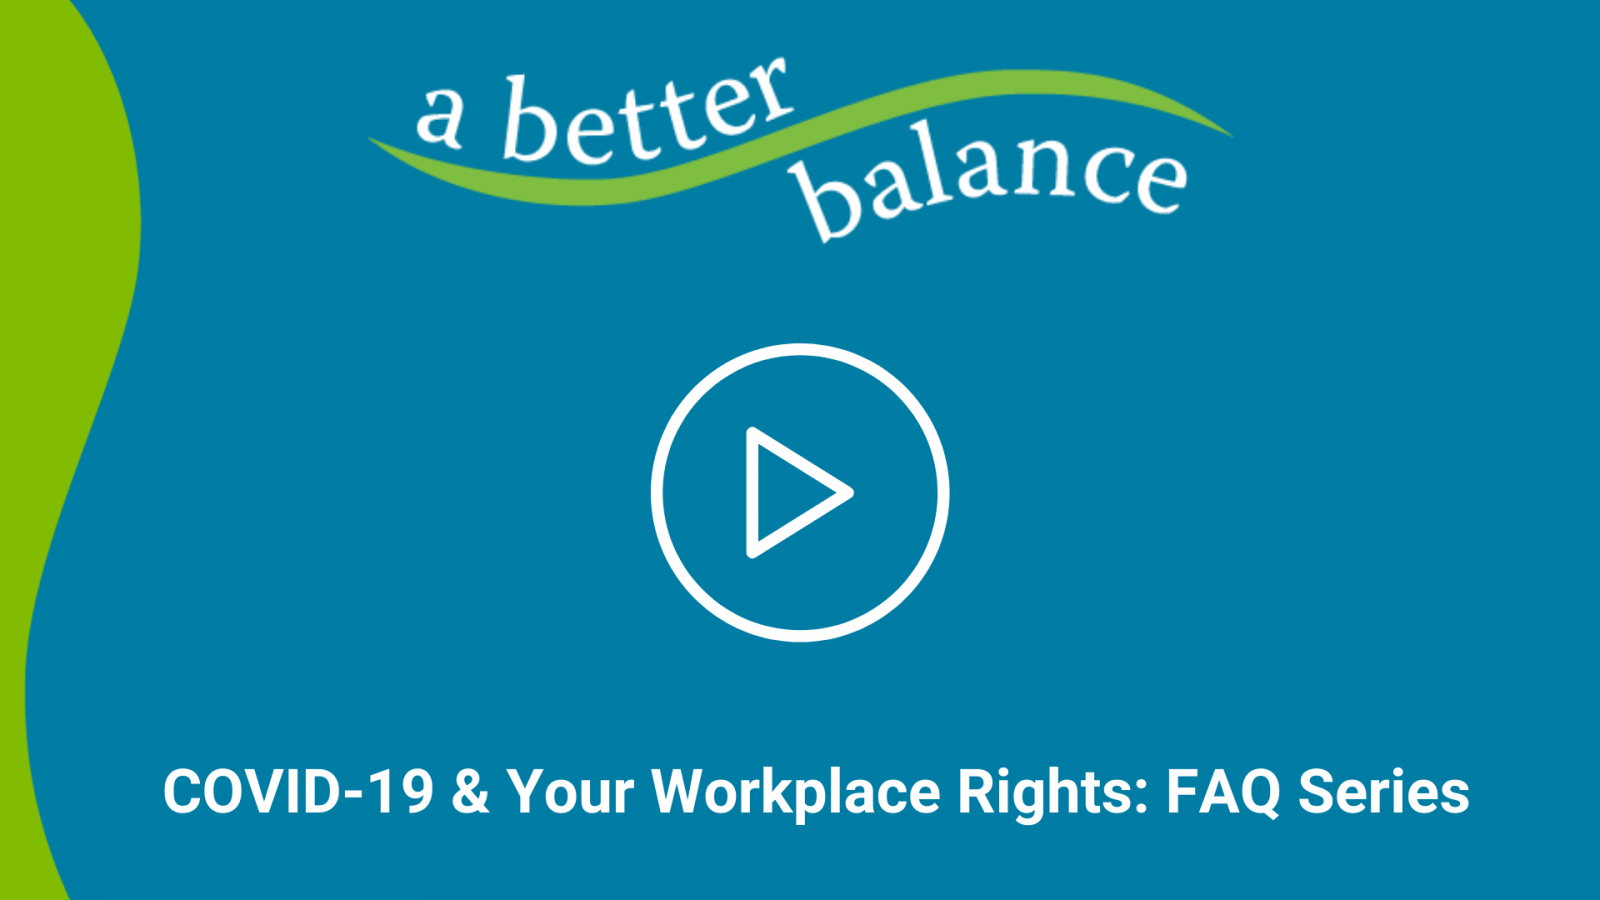 Justice For Workers: Our COVID-19 FAQ Series Can Help Workers Exercise Their Rights